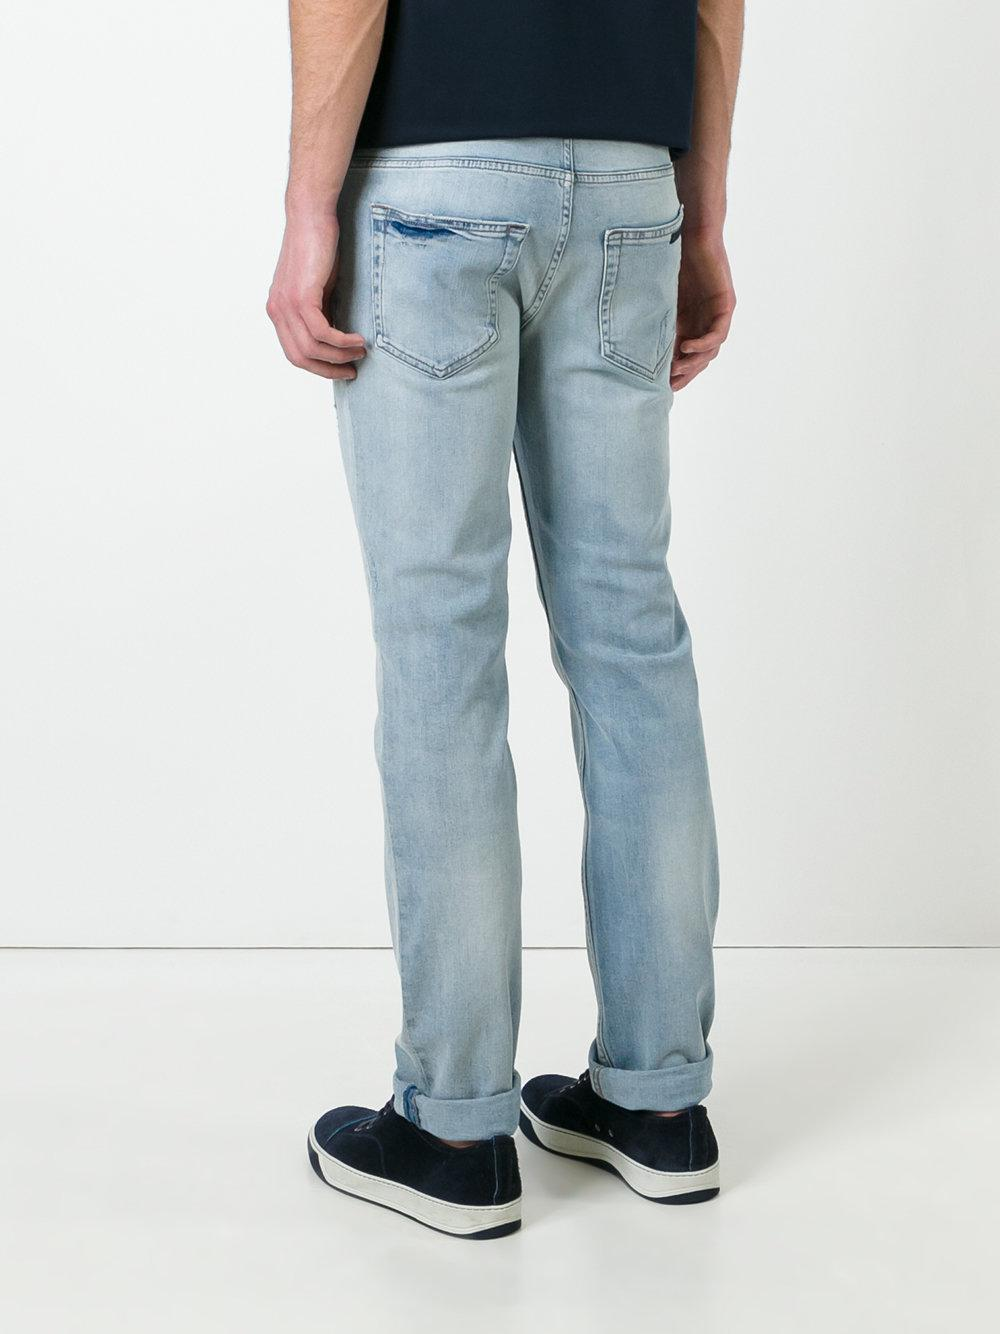 Prada Denim - Stonewashed Slim-fit Jeans - Men - Cotton/spandex/elastane - 35 in Blue for Men